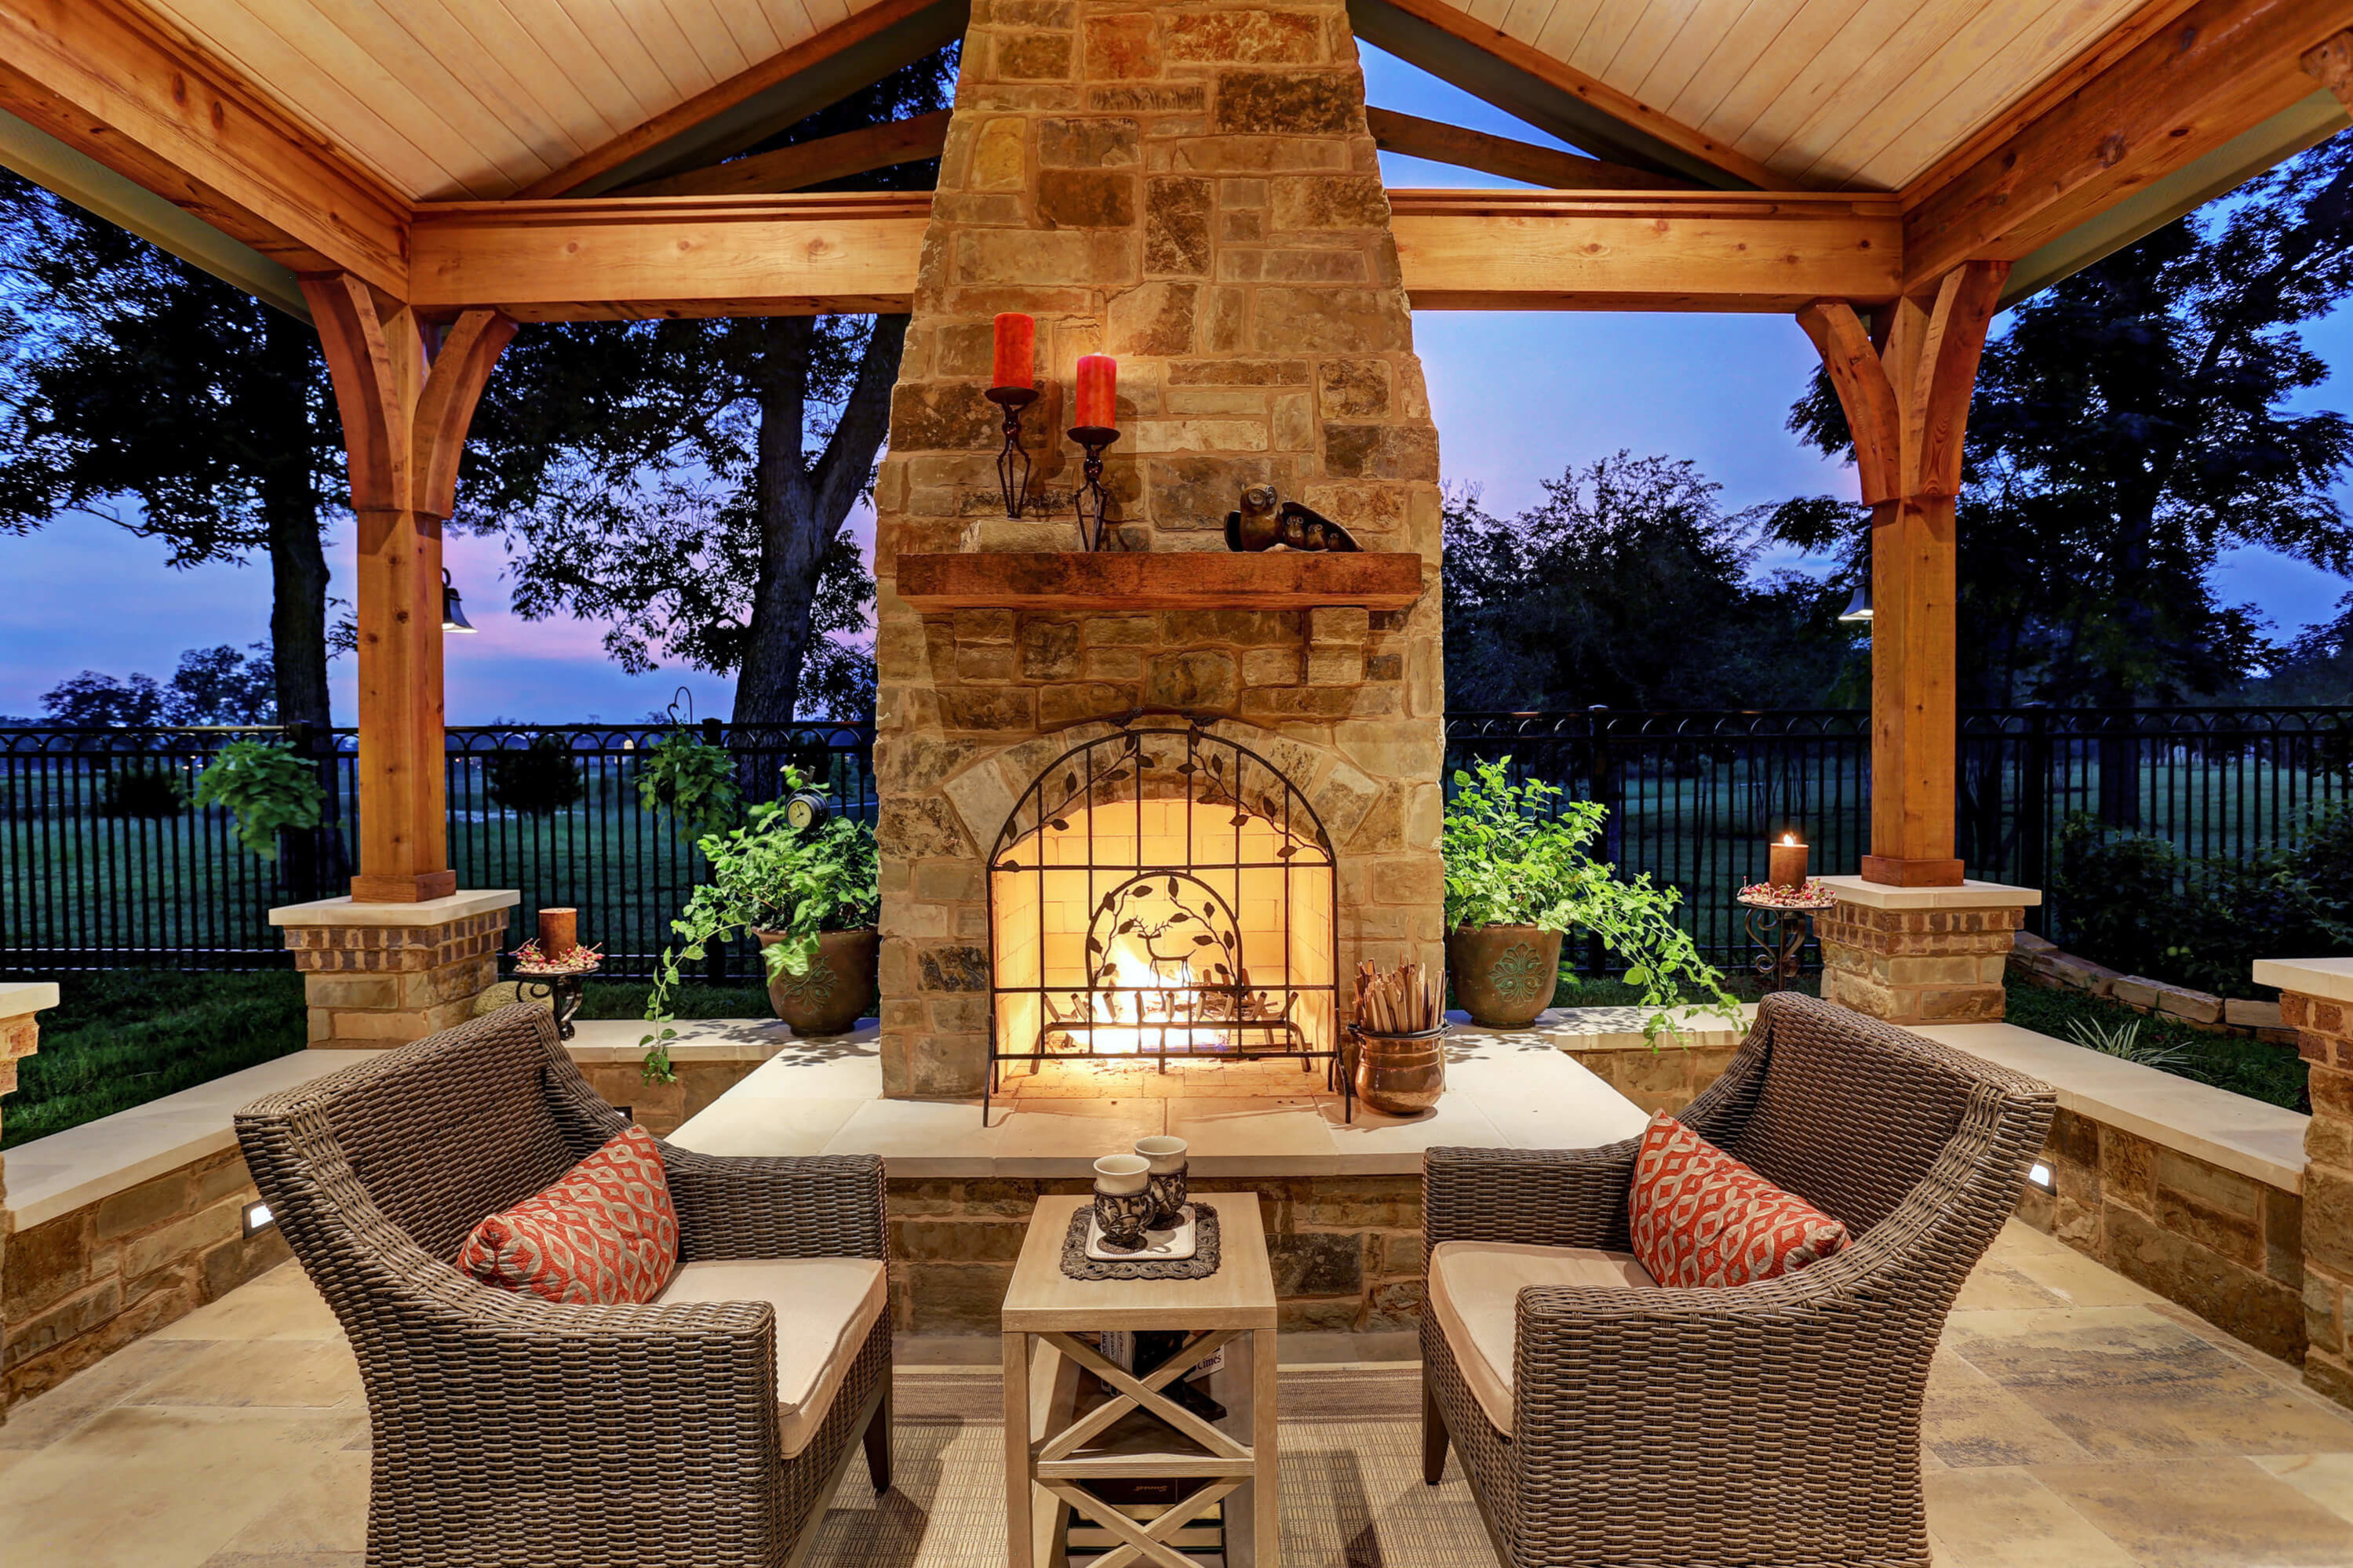 Fireplace texas custom patios - Outdoor living spaces with fireplace ...